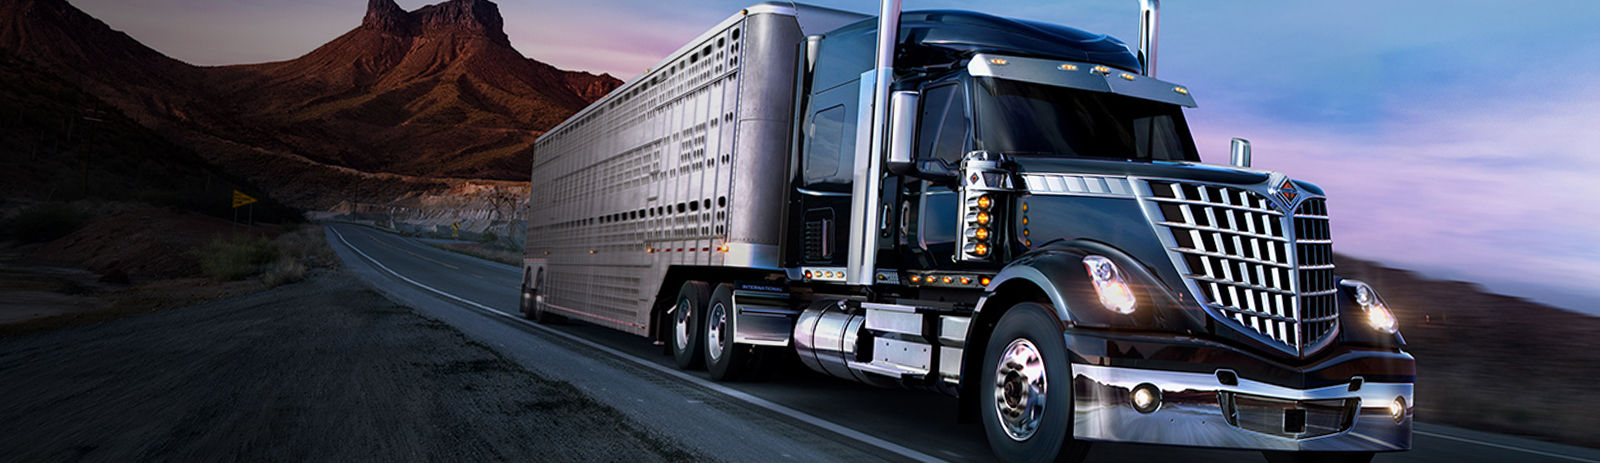 Truck Sales & Services | Eastern Ohio | Full-service dealership